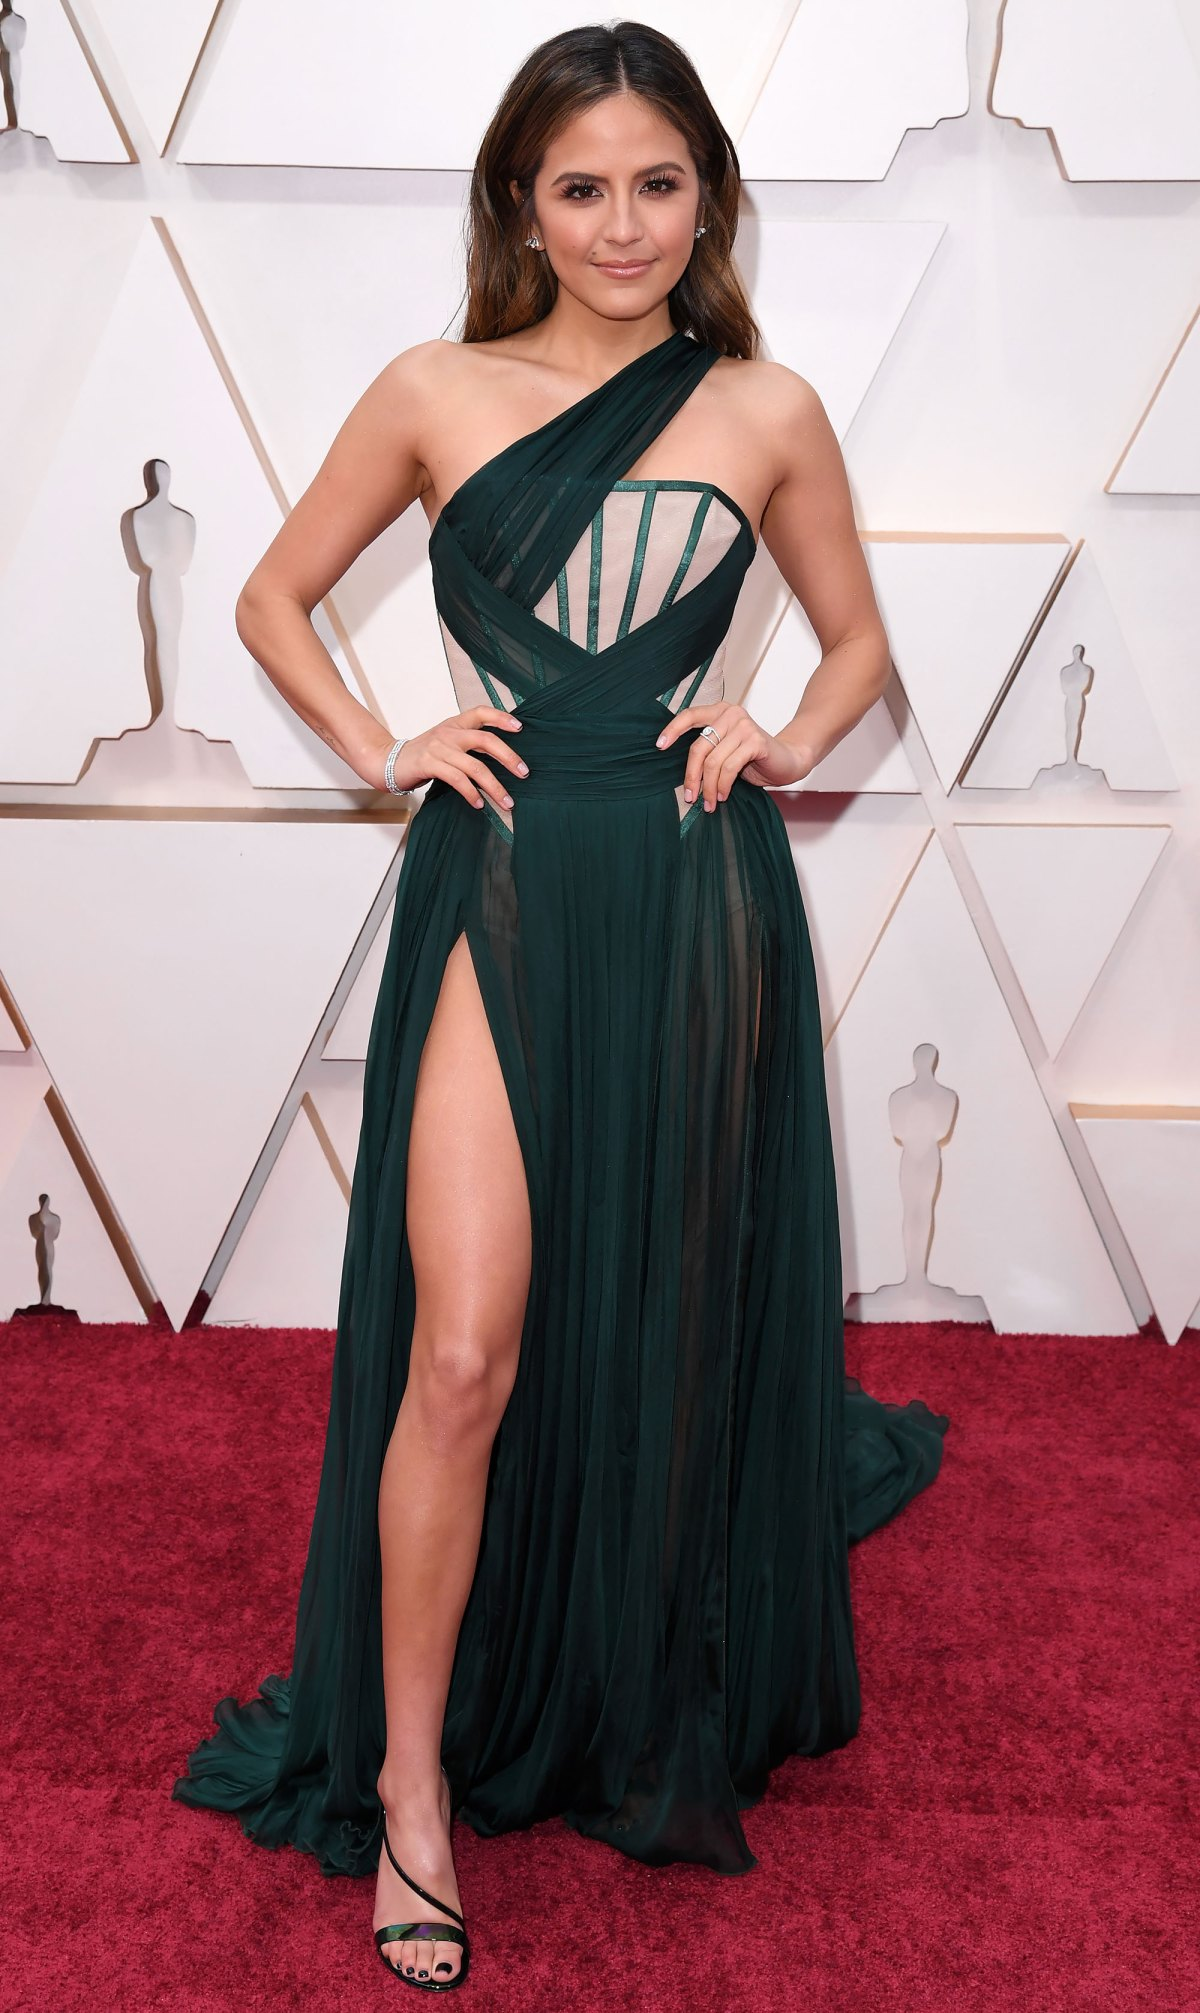 Oscars 2020 Red Carpet Fashion See Celeb Dresses Gowns